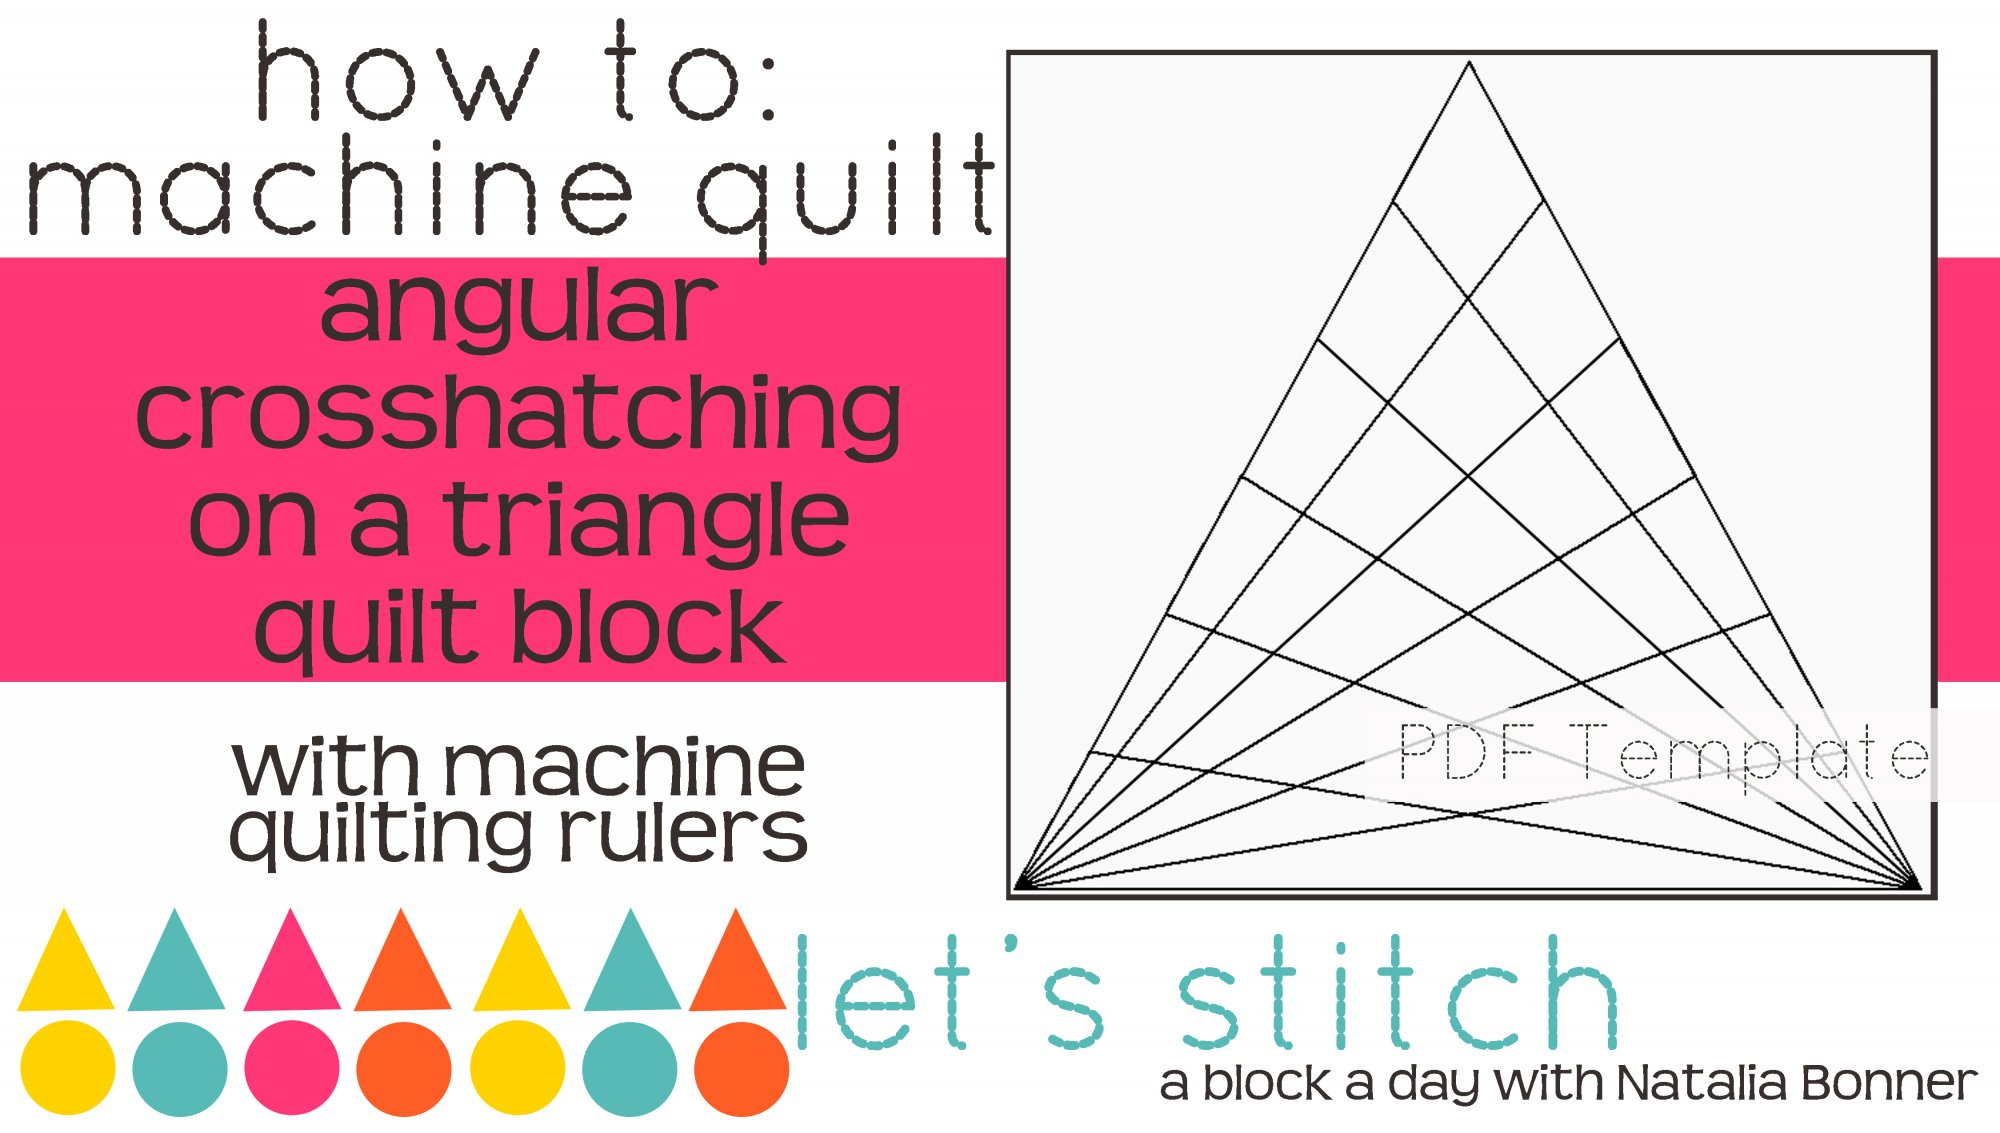 Let's Stitch - A Block a Day With Natalia Bonner - PDF - Angular Crosshatching on a Triangle